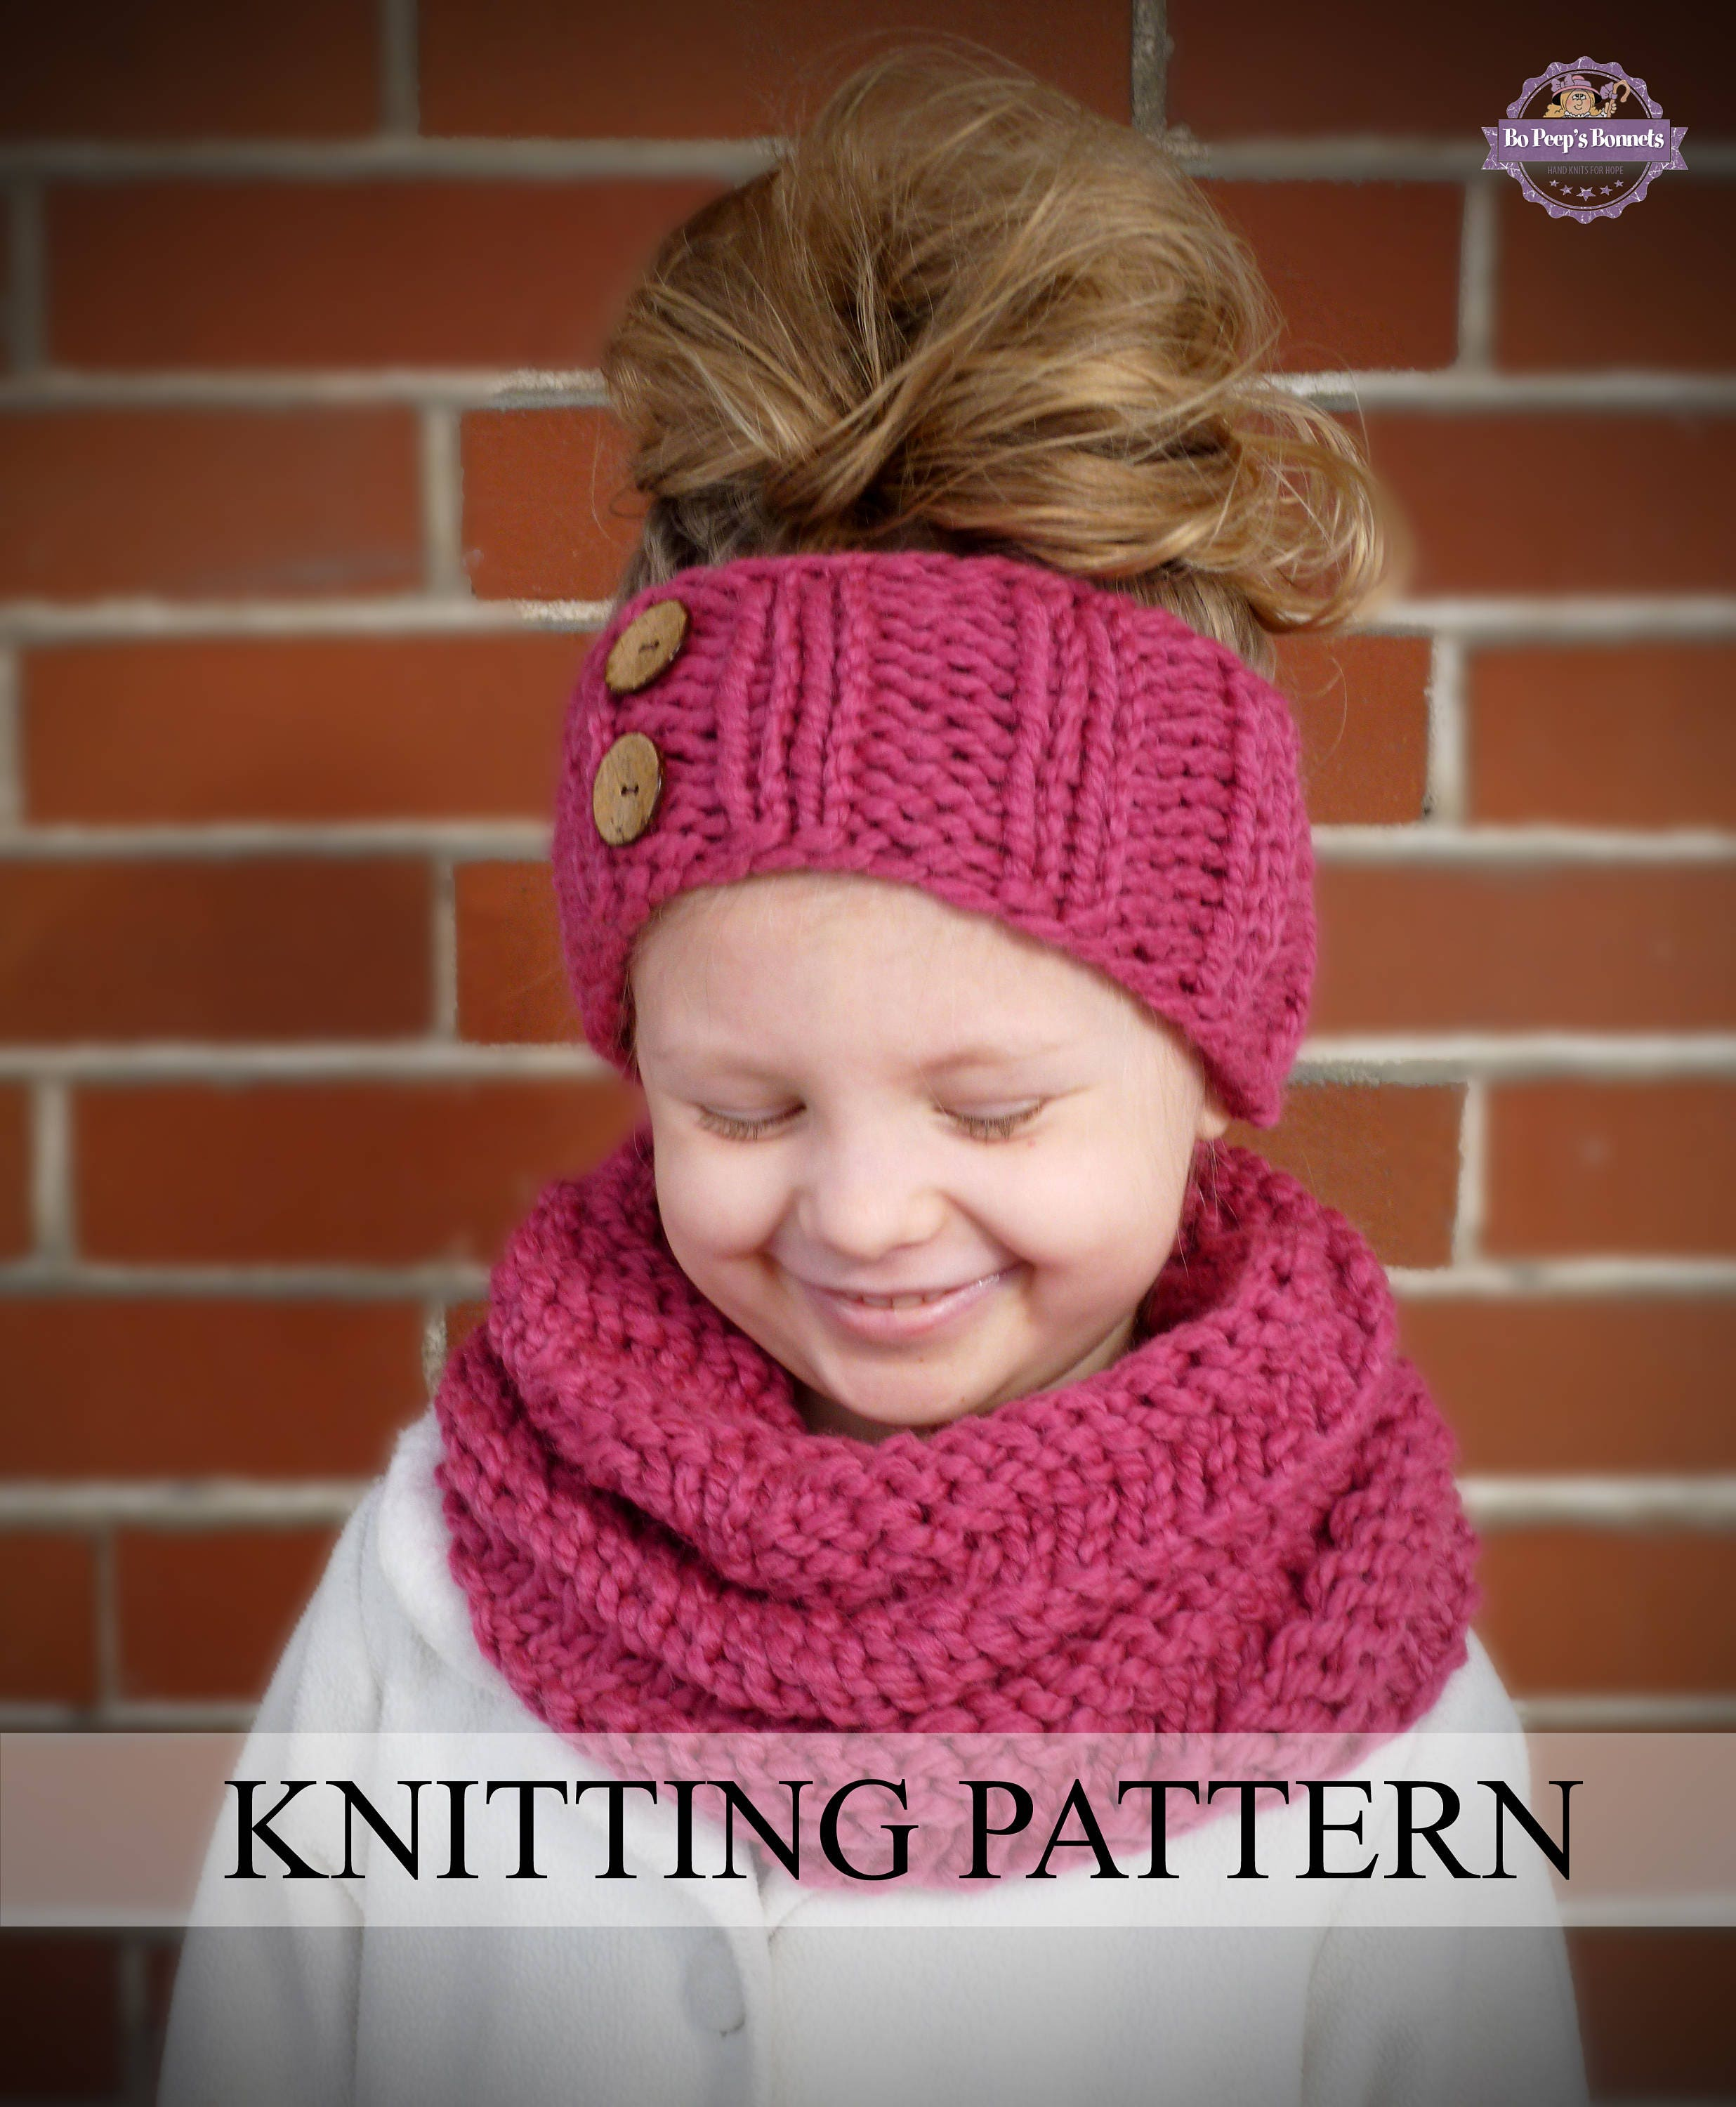 INSTANT DOWNLOAD Knitting PATTERN Spiral Cowl and Headband